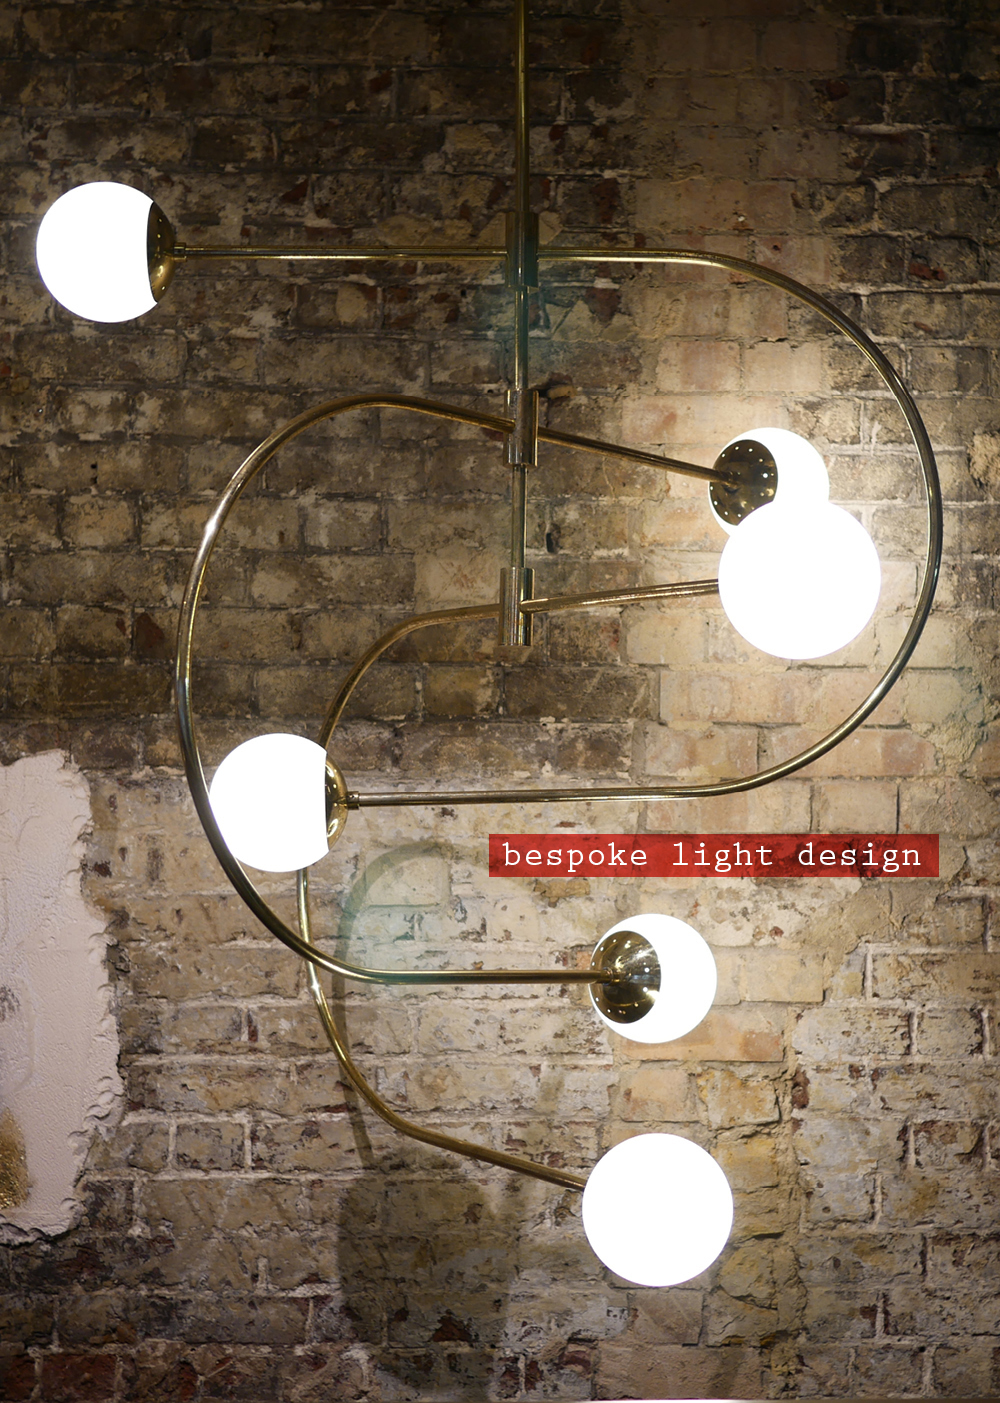 kricket-soho-london-bar-restaurant-interior-design-bespoke-lighting-3-caption